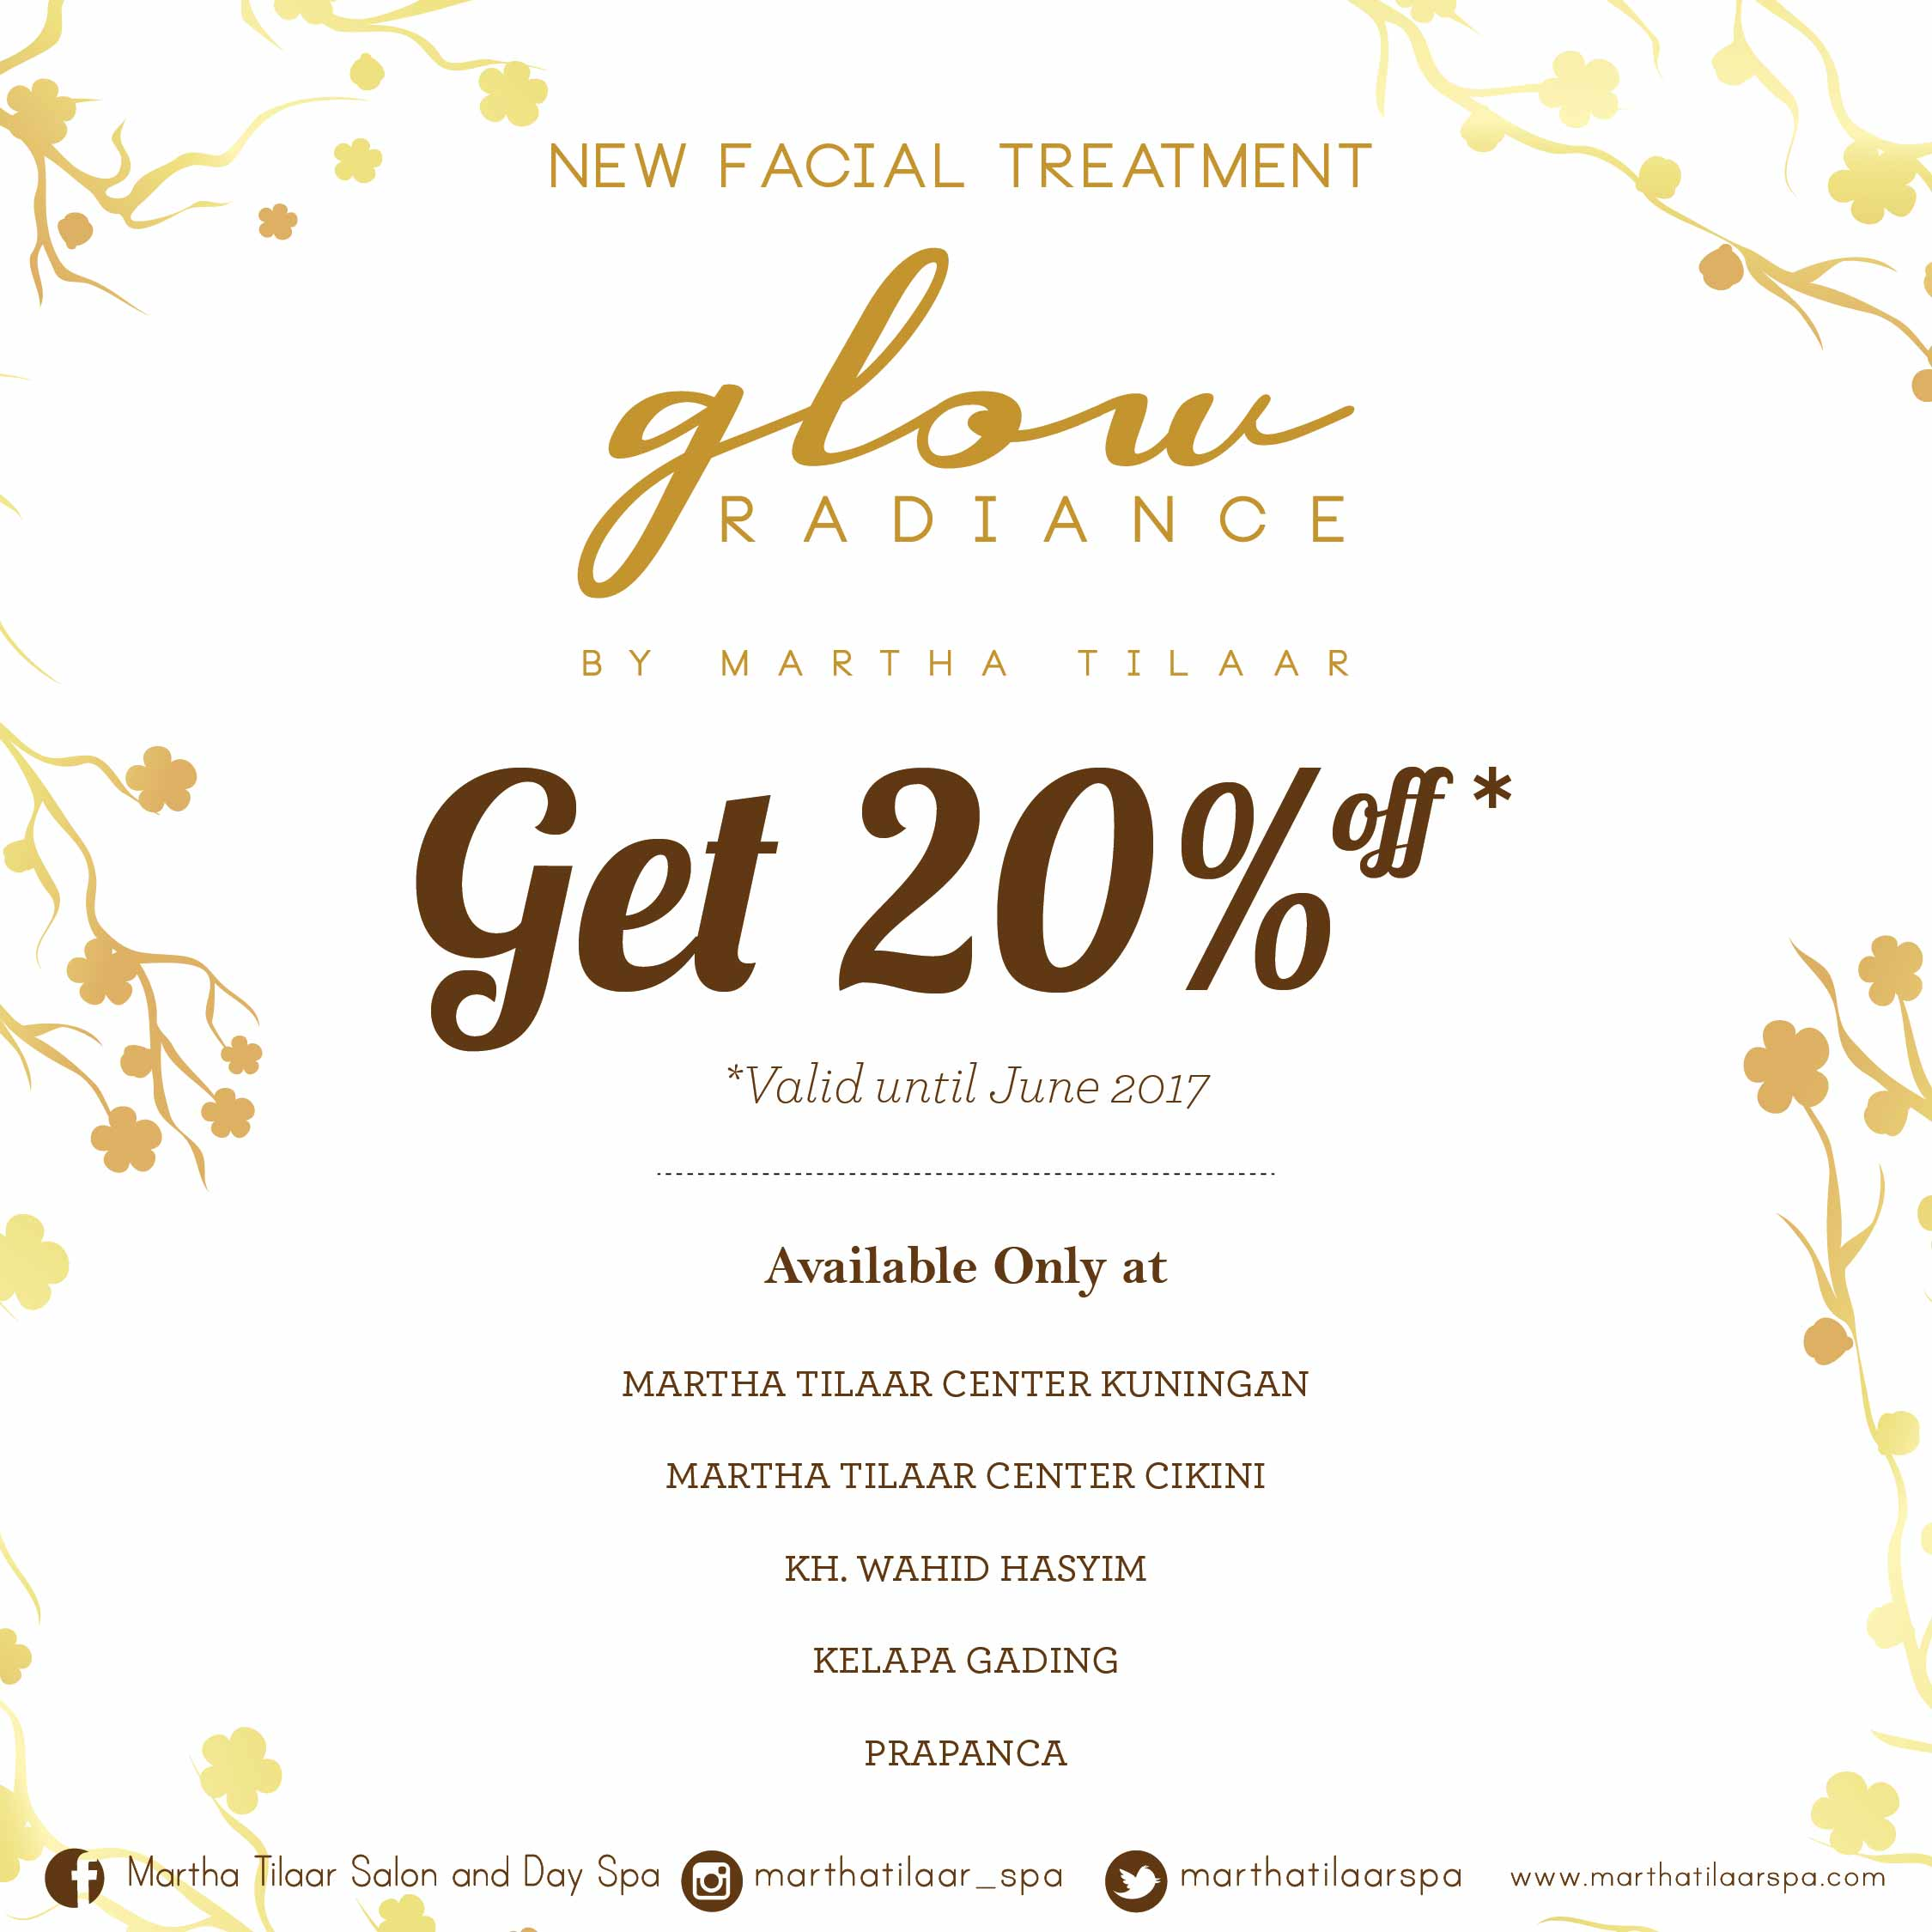 GET 20% OFF ON GLOW RADIANCE